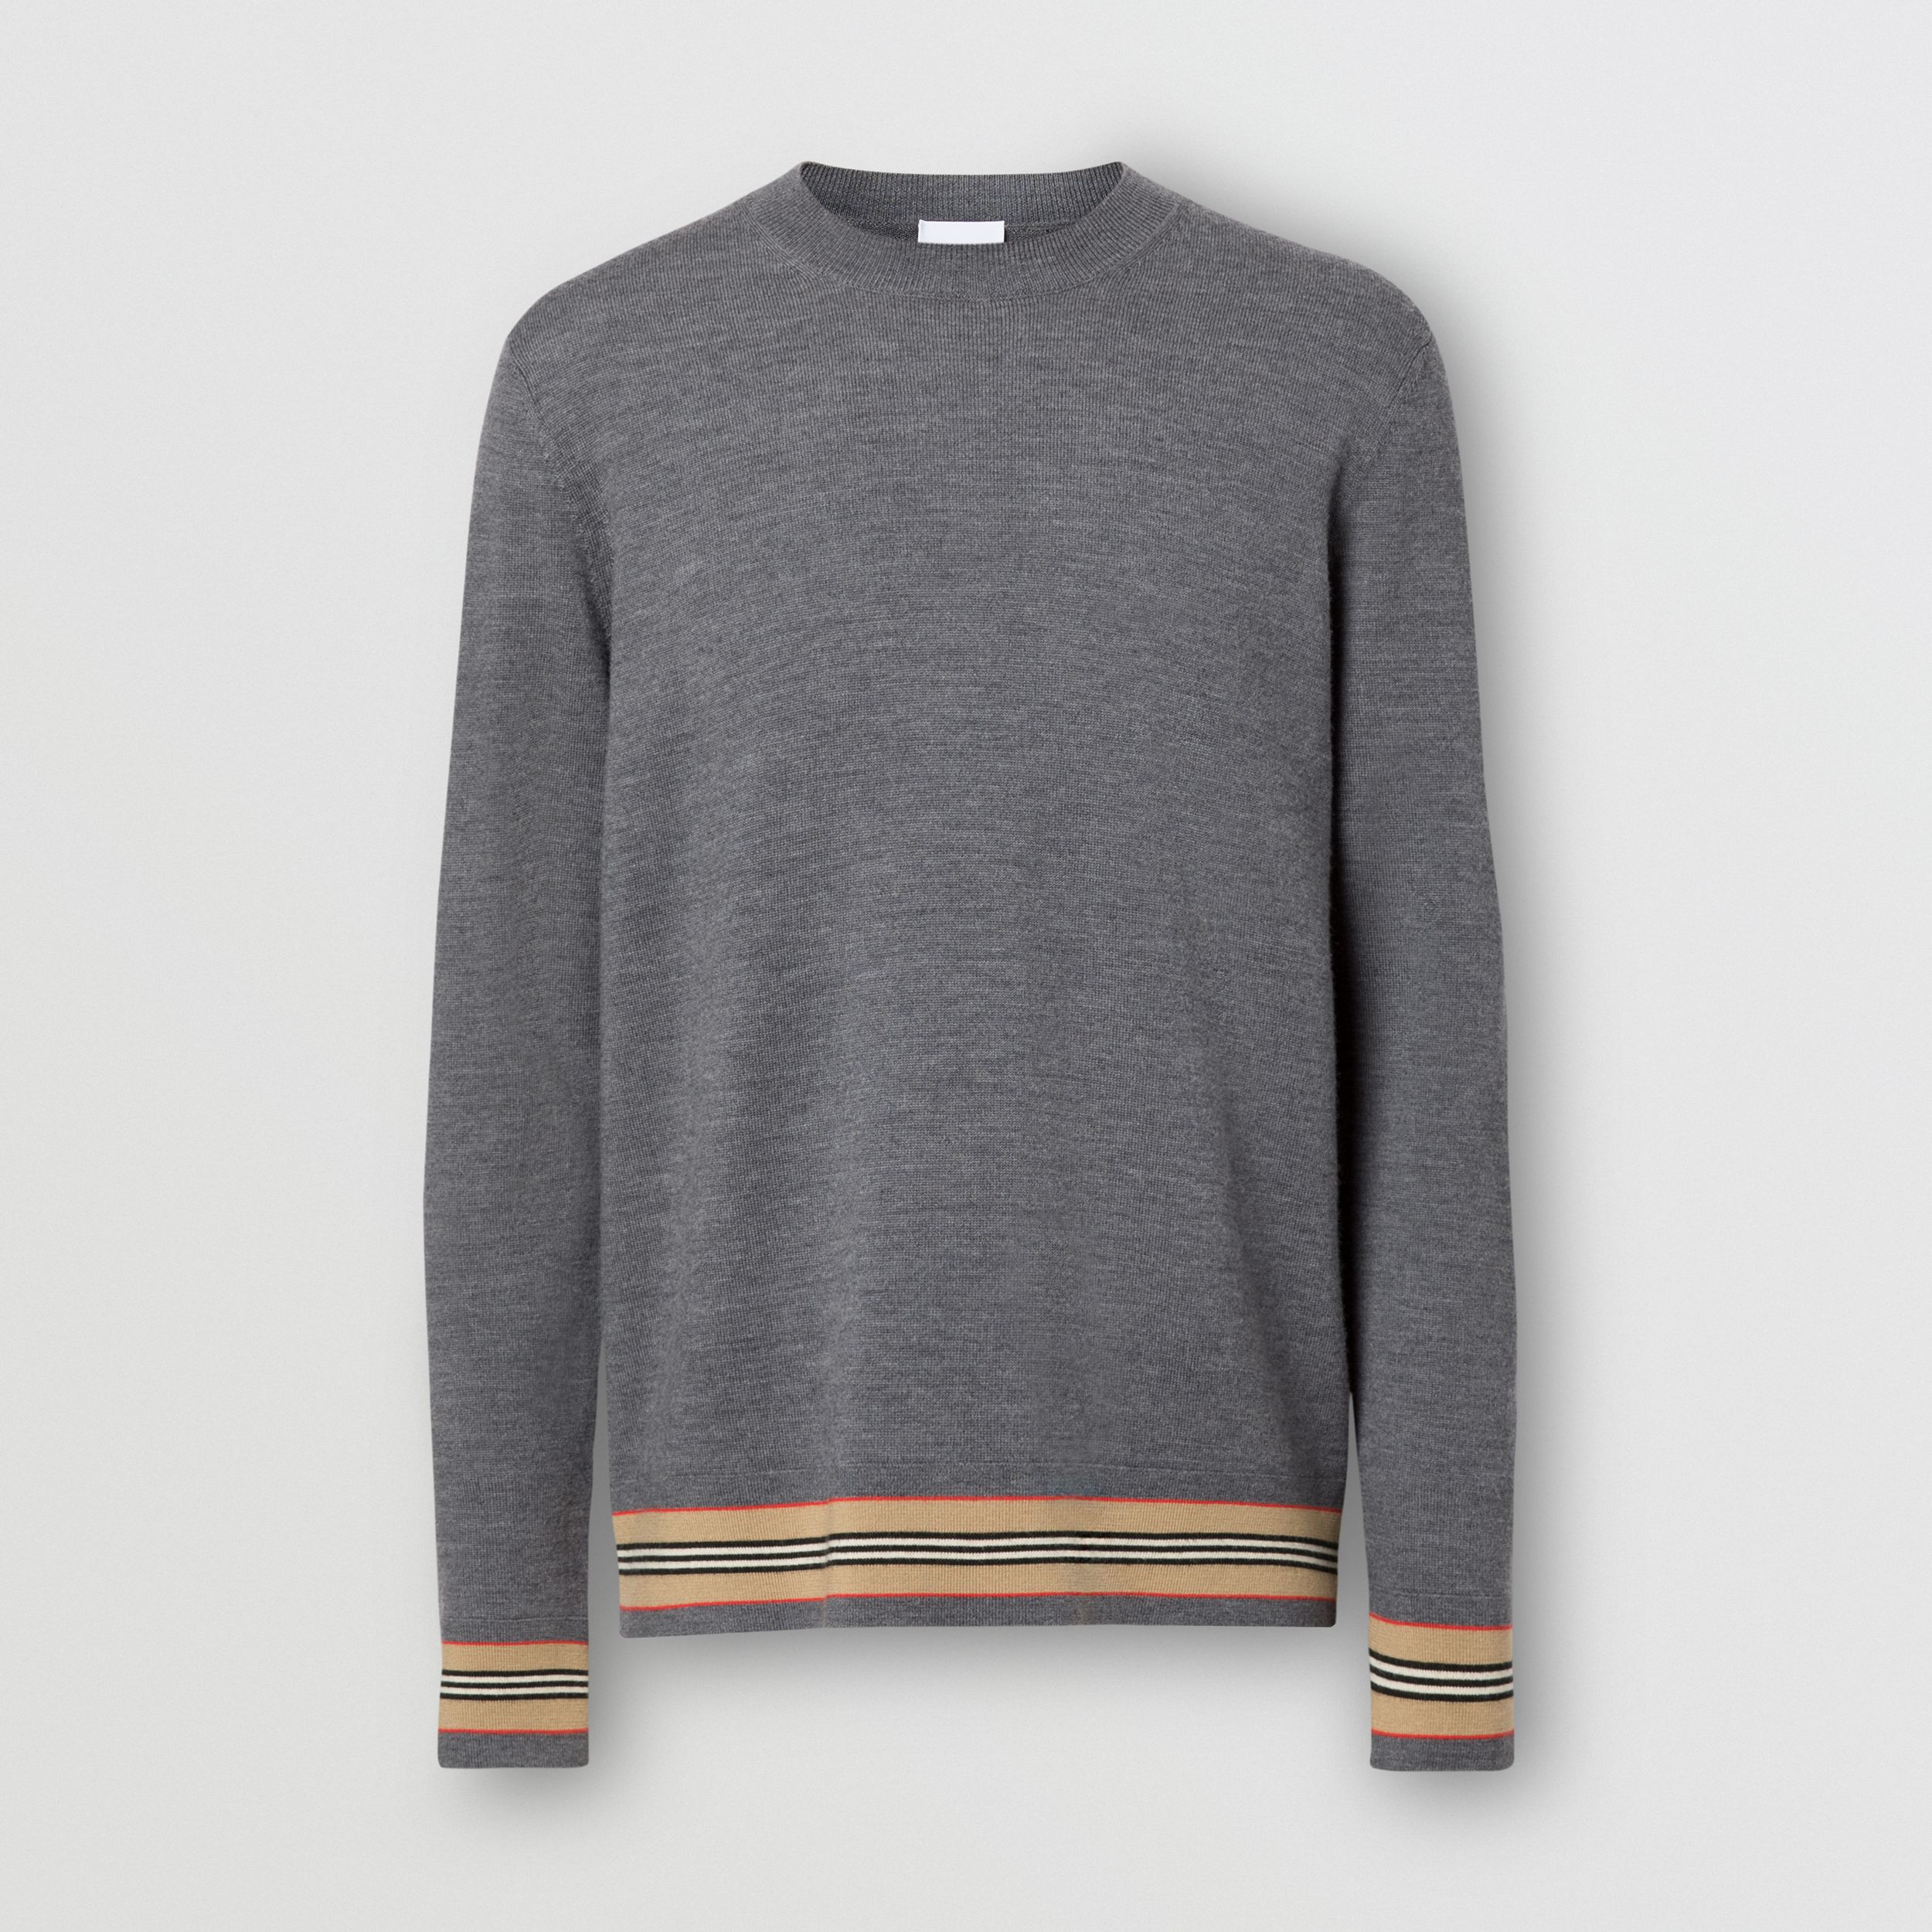 Icon Stripe Detail Merino Wool Sweater in Dark Grey Melange - Men | Burberry United States - 4